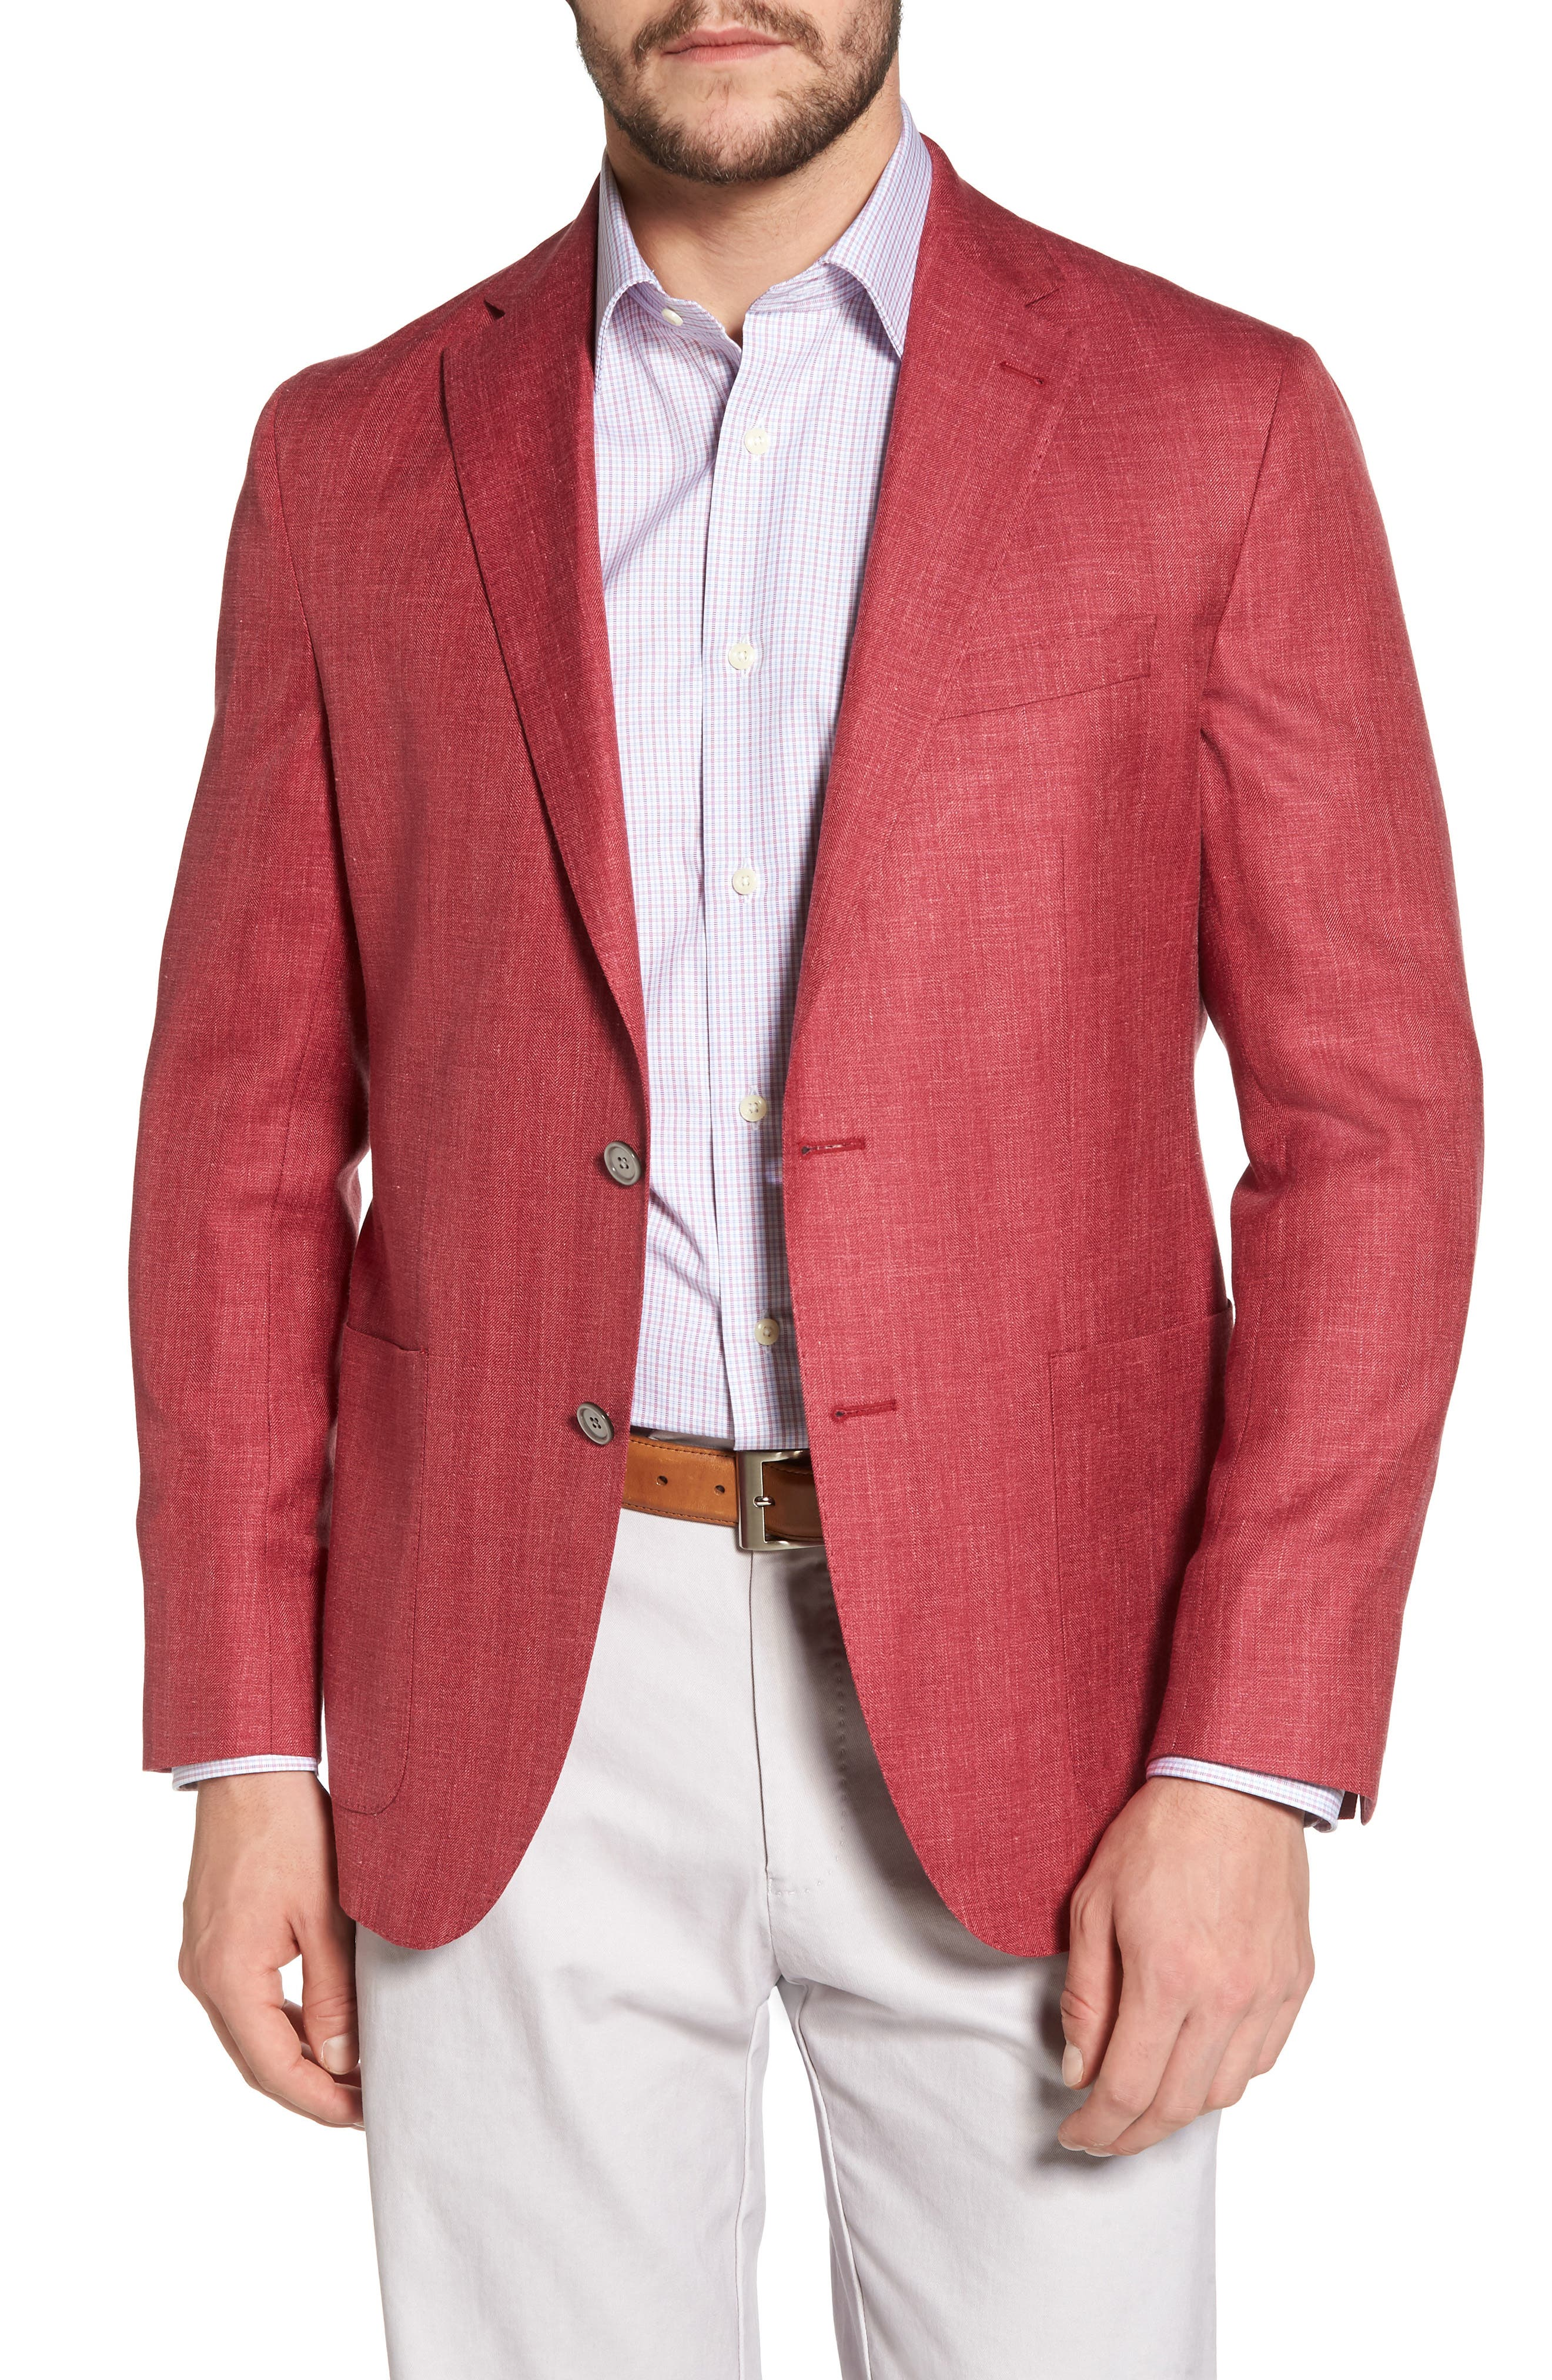 Aiden Classic Fit Wool Blend Blazer,                         Main,                         color, 600